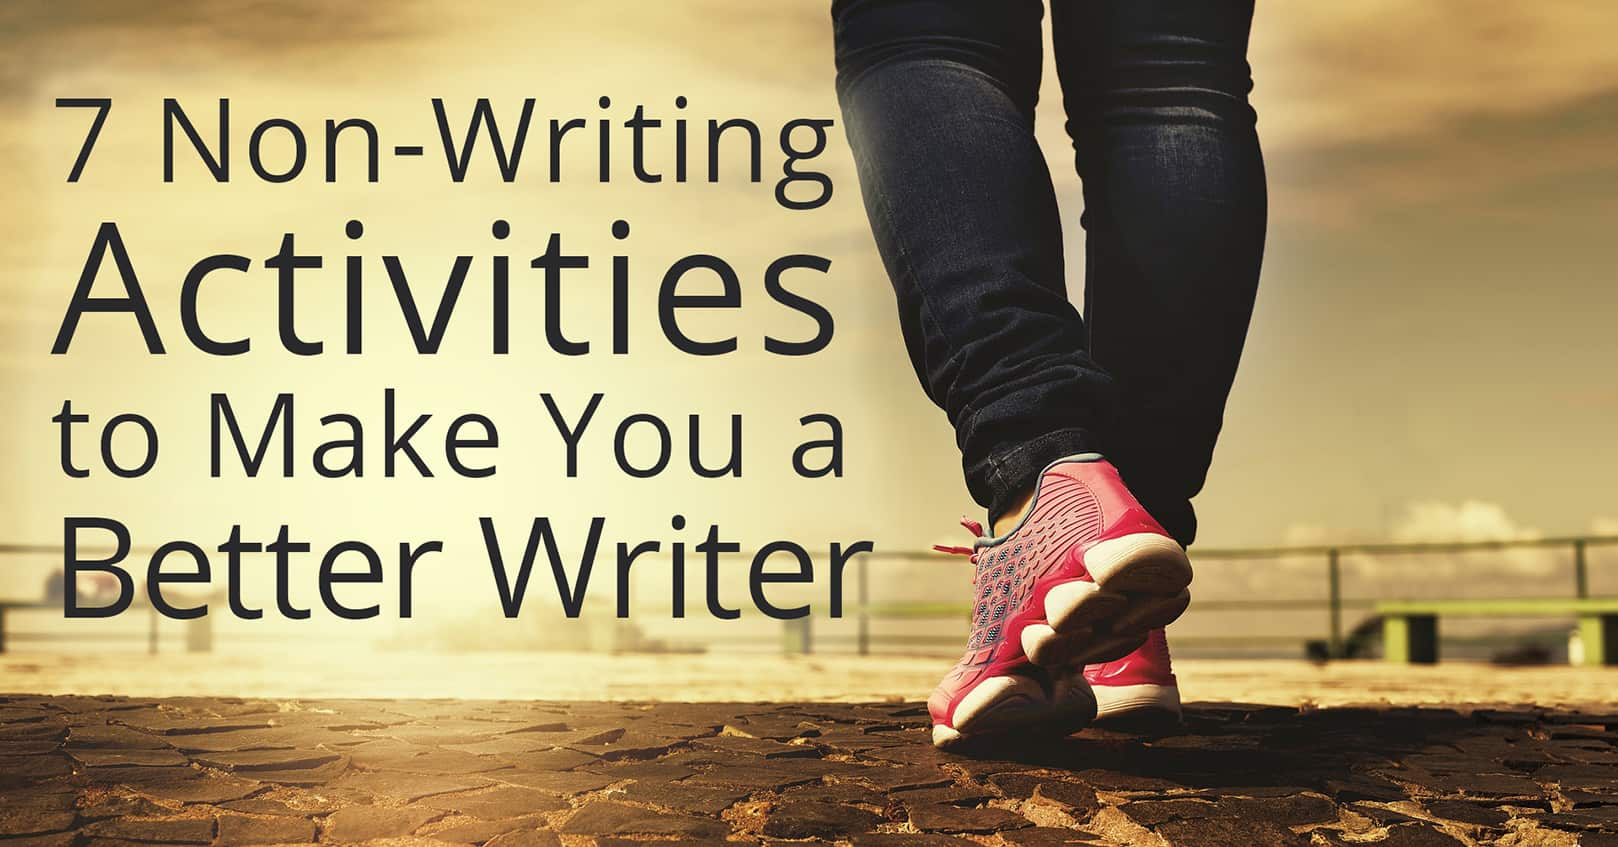 non-writing activities to make you a better writer